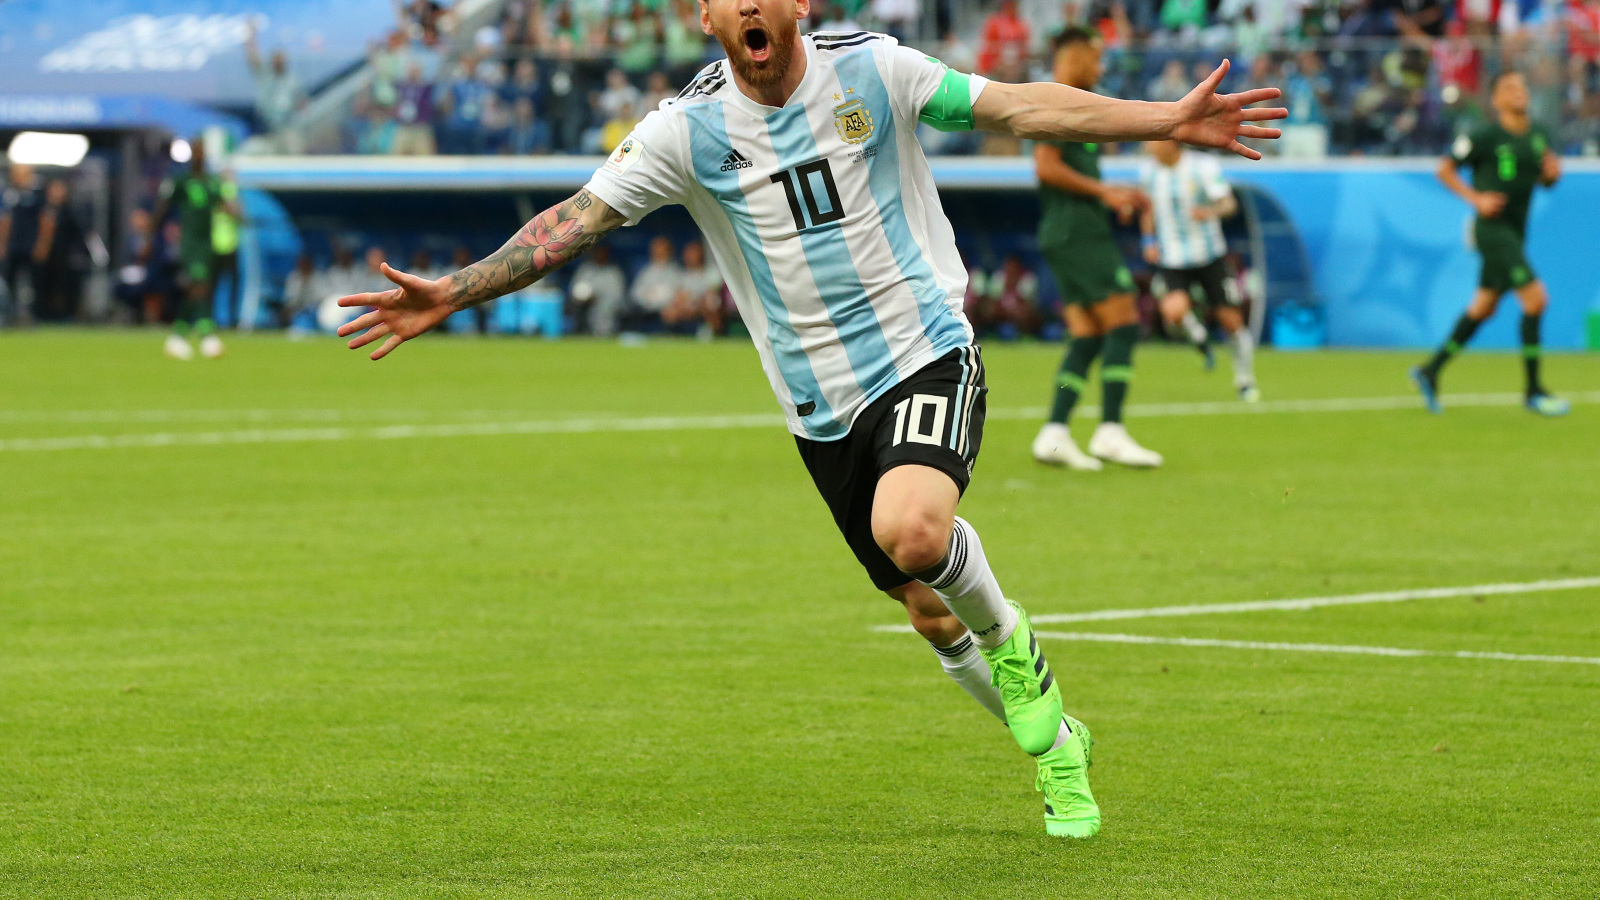 1600x900 Lionel Messi in FIFA 2018 World Cup 1600x900 ...